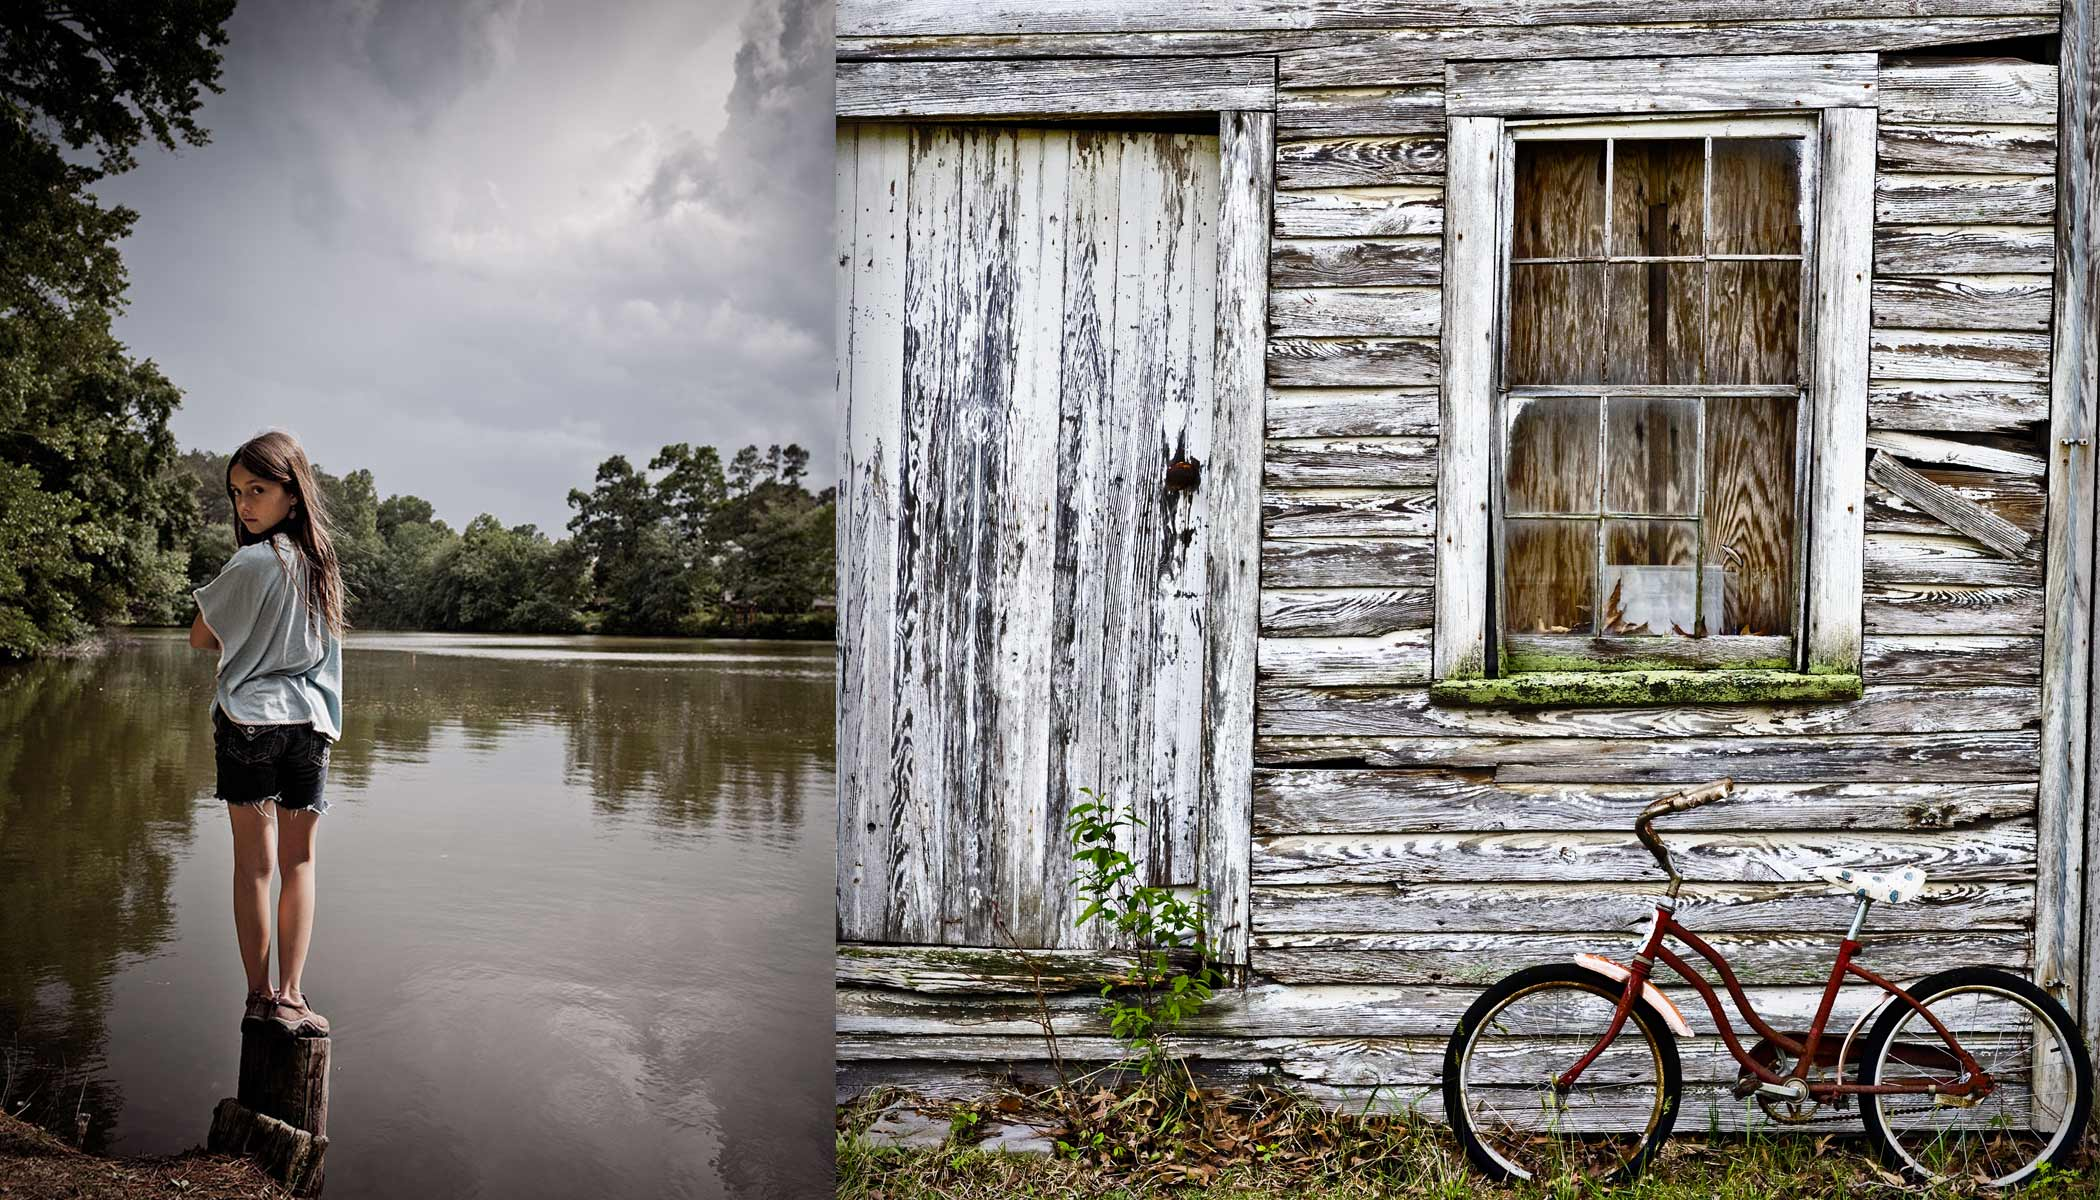 Life-girl-storm-bicycle